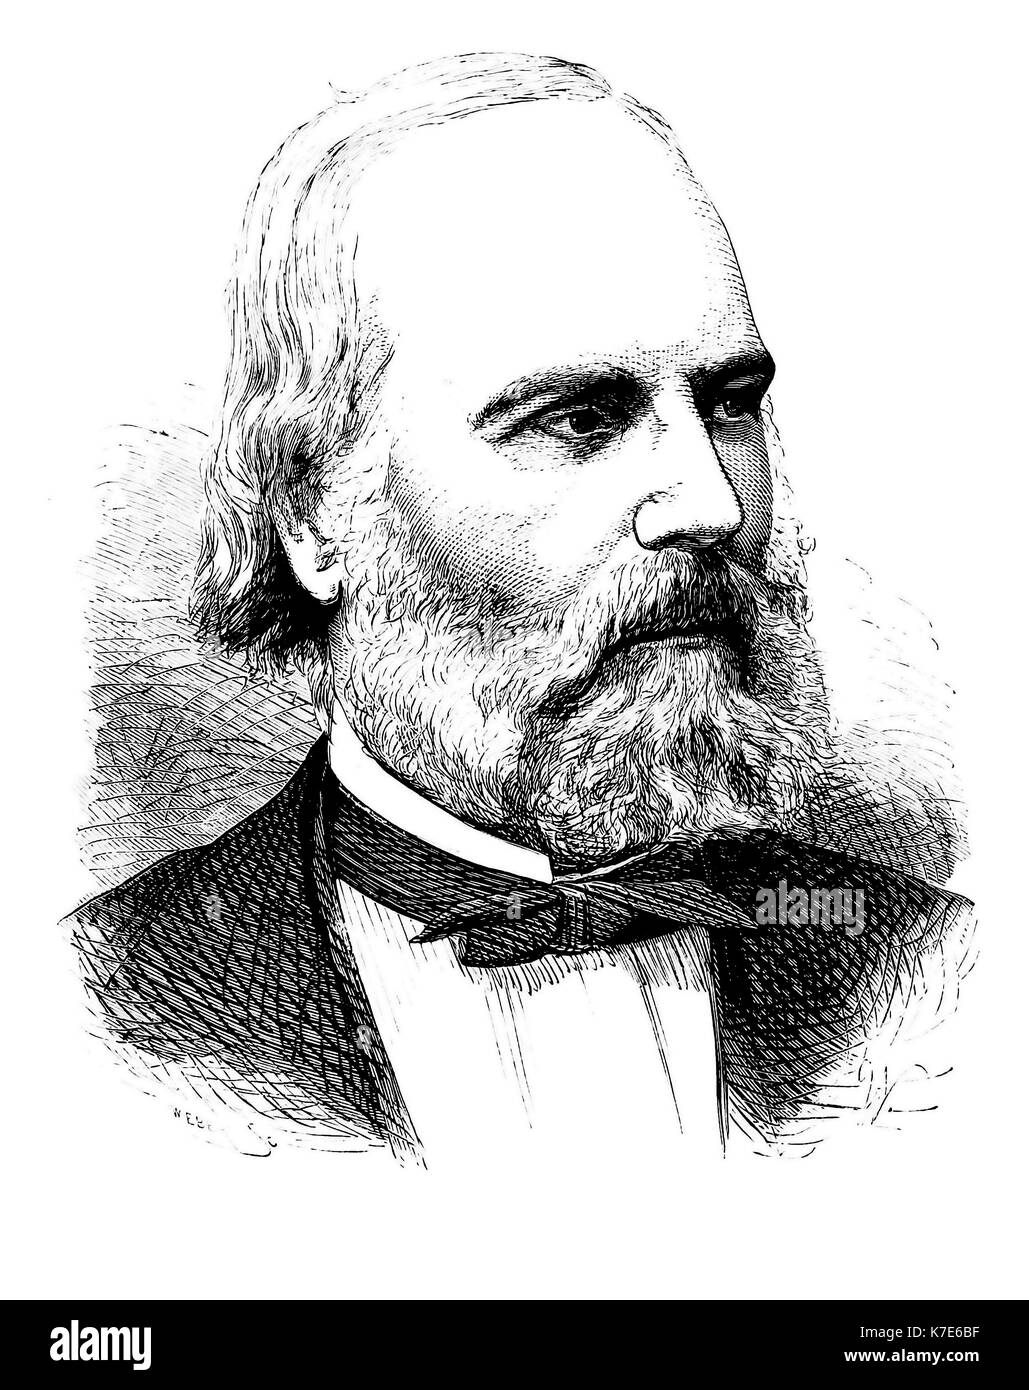 J. LAWRENCE SMITH (1818-1883) American chemist - Stock Image